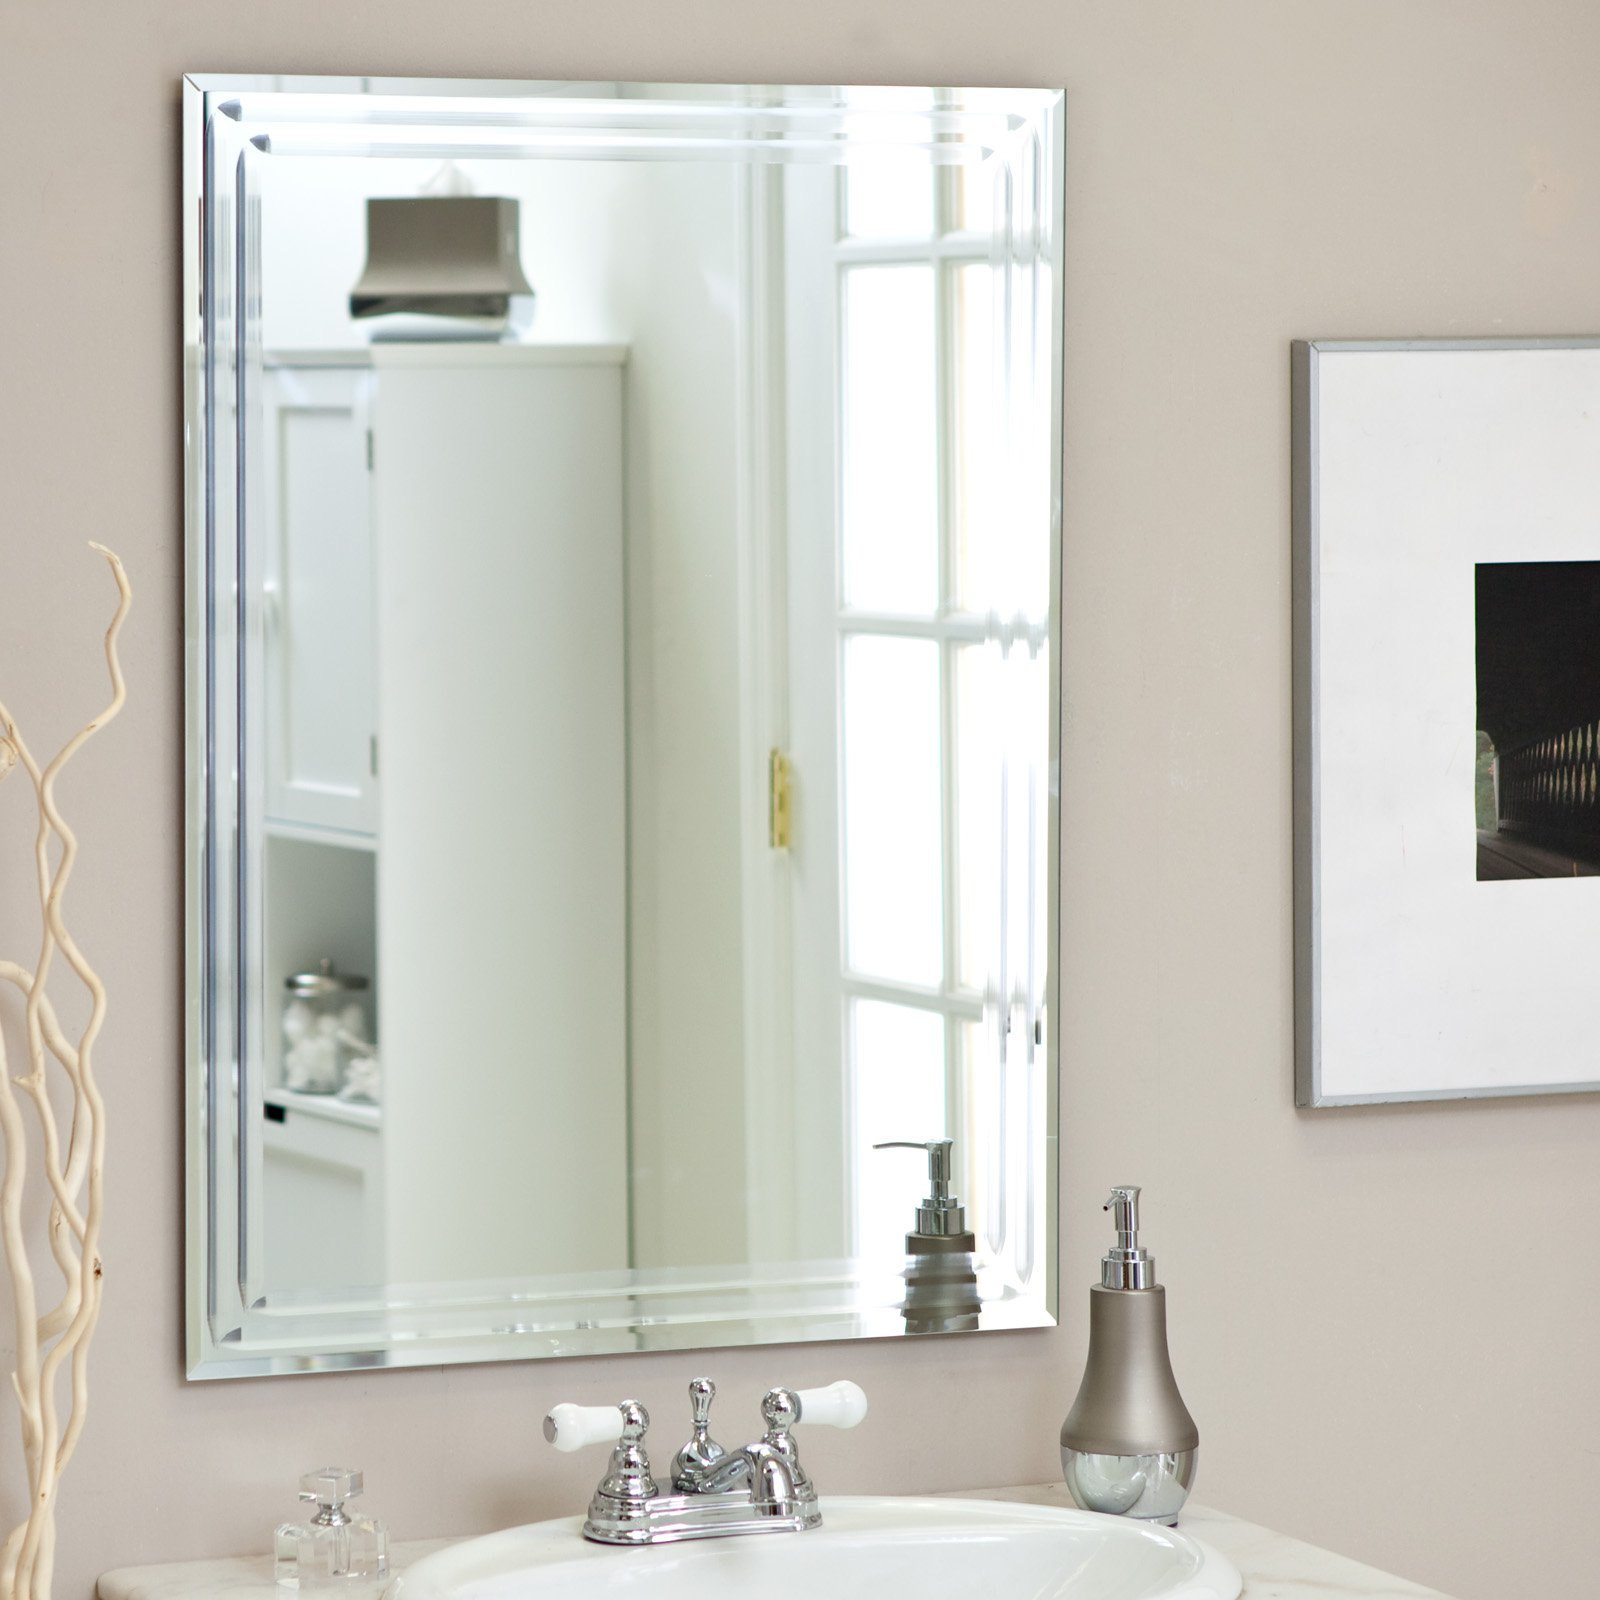 Dcor Wonderland Frameless Tri Bevel Wall Mirror W 3 Piece Set Unique With Current Frameless Beveled Wall Mirrors (View 17 of 20)